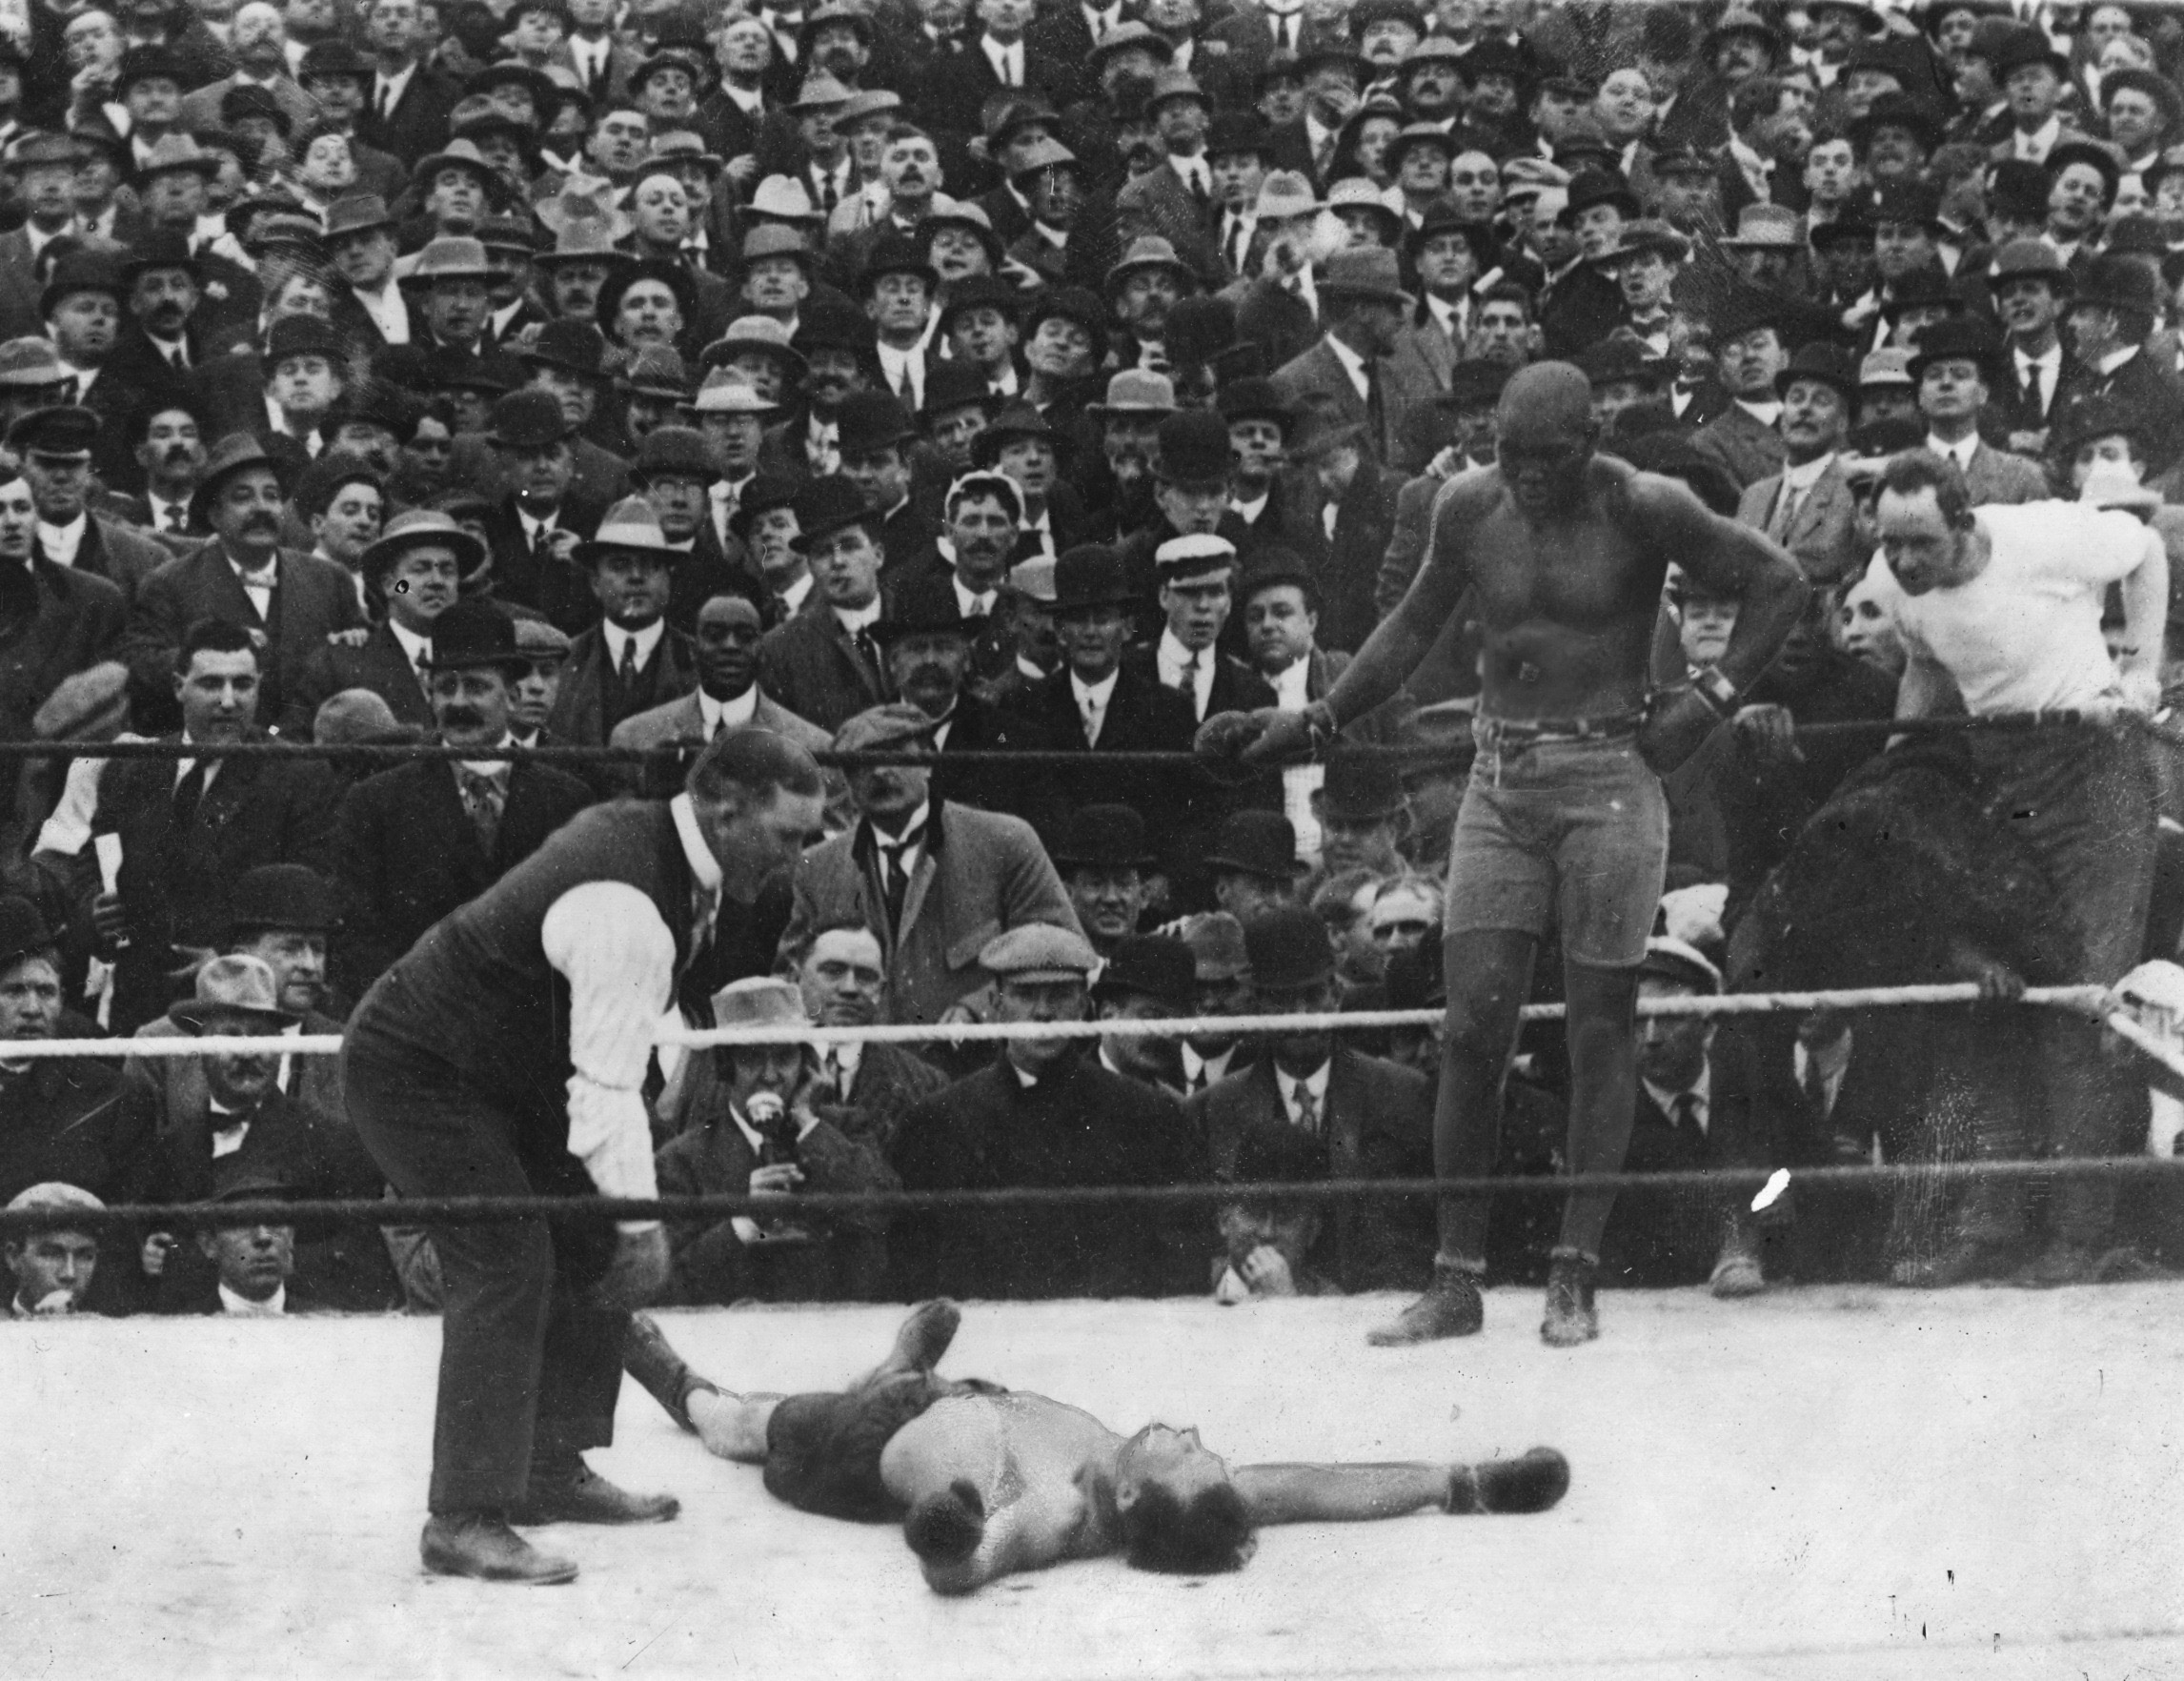 Jack Johnson leans back on the ropes while his opponent, Stan Ketchel, lays unconscious in the ring and the referee bends over him to count him out.